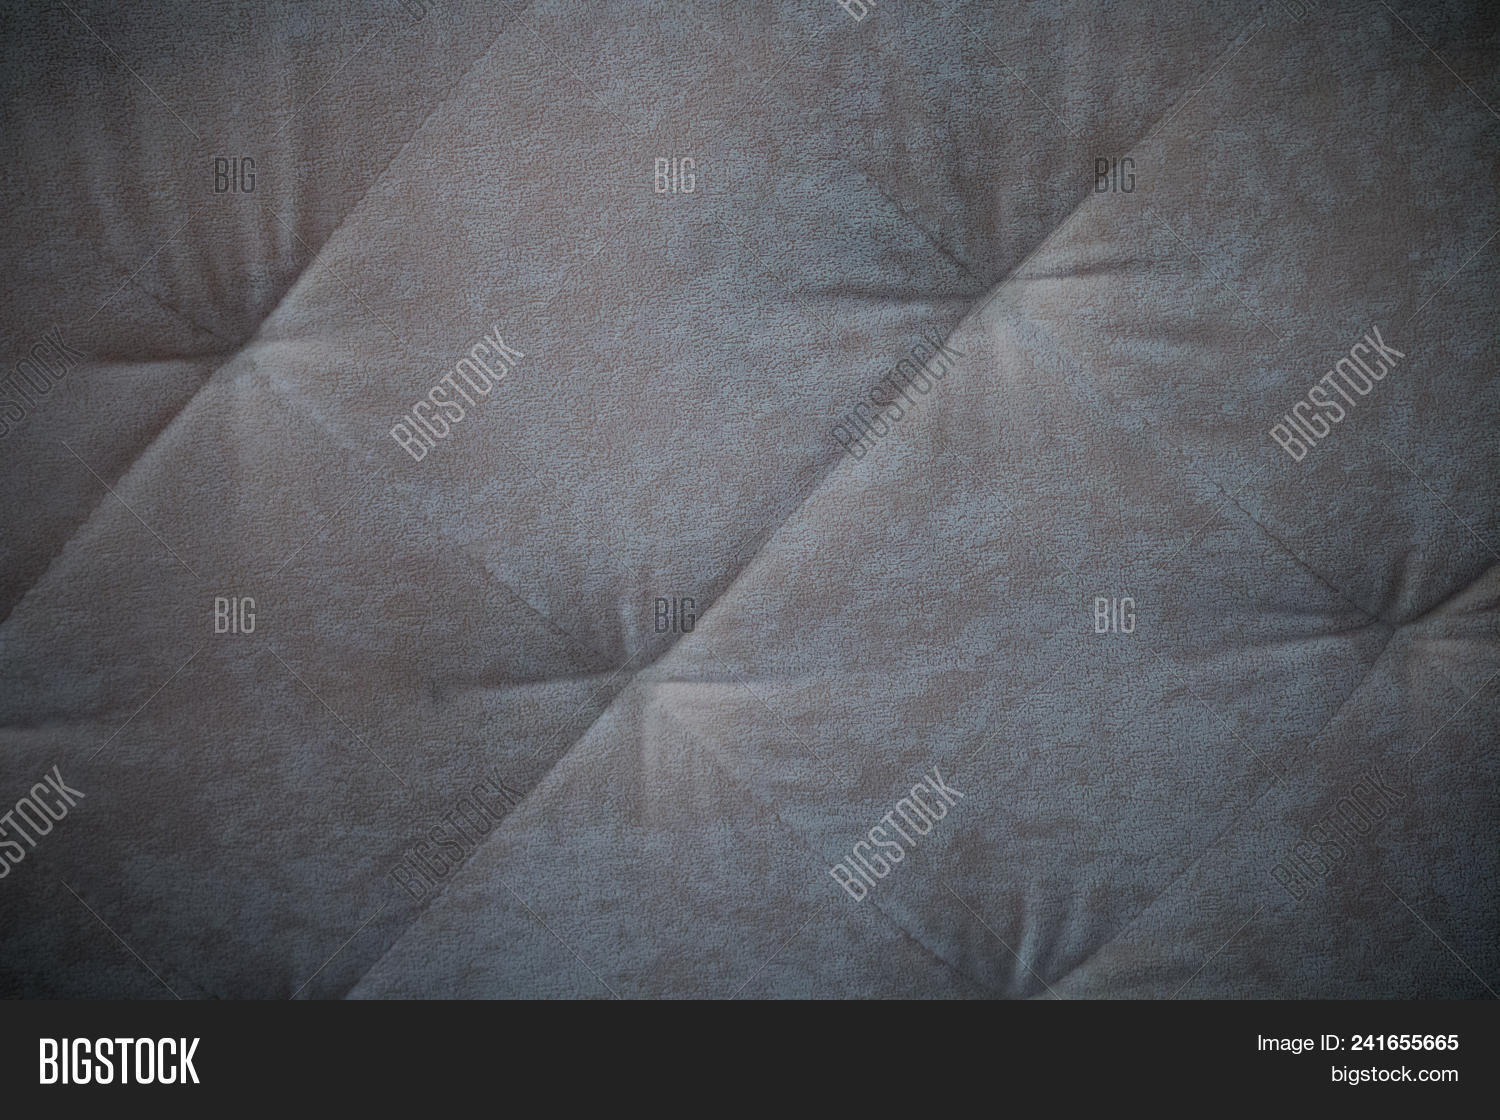 Leather Sofa Texture Seamless Background Gray Upholstery With Dents